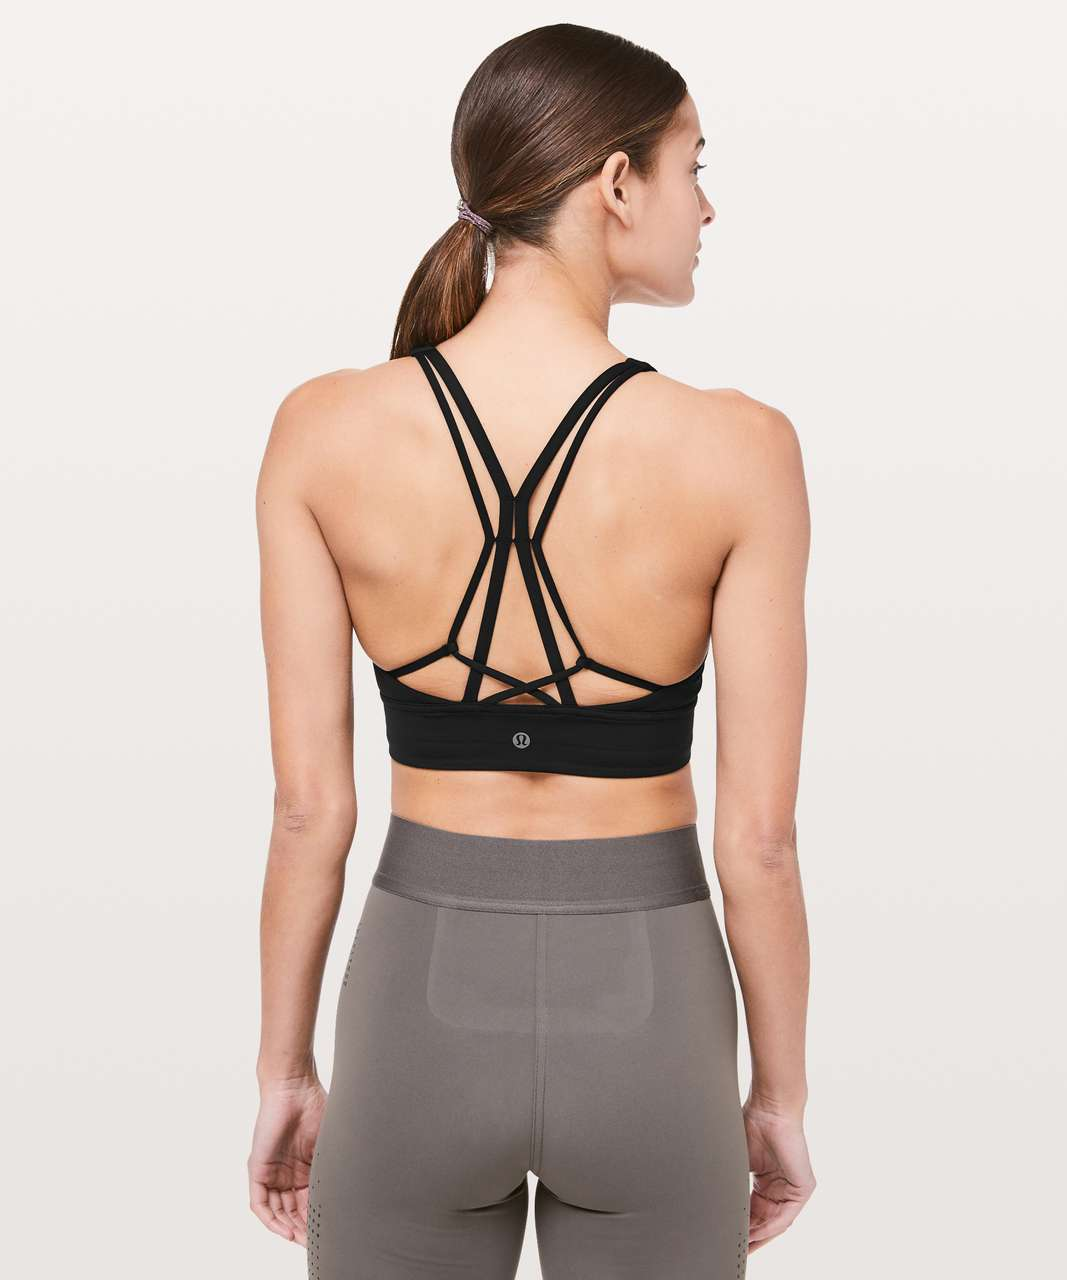 Lululemon Ride & Reflect Bra *lululemon X SoulCycle - Black